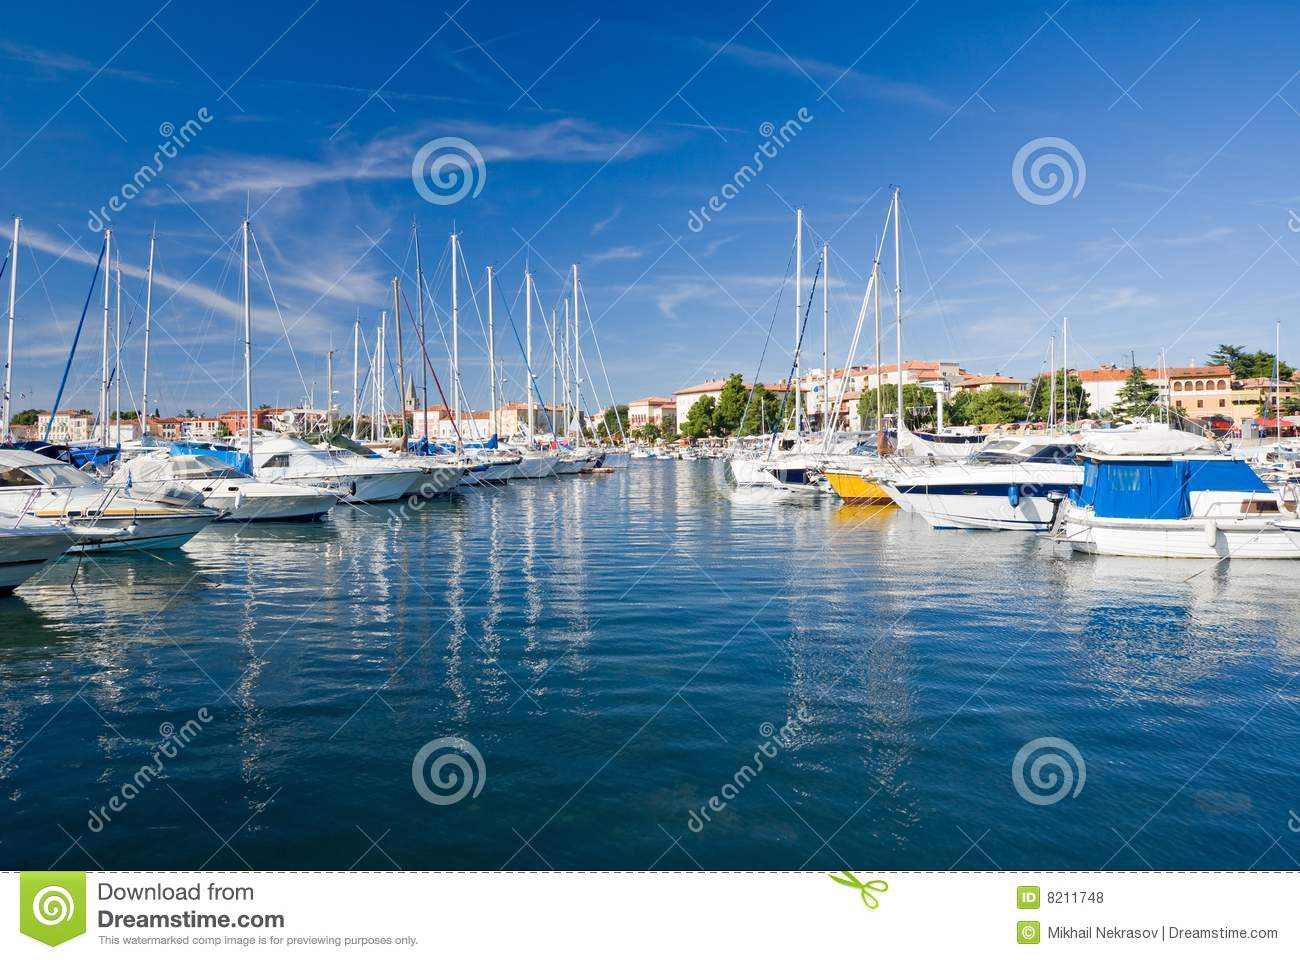 Marina of Porec